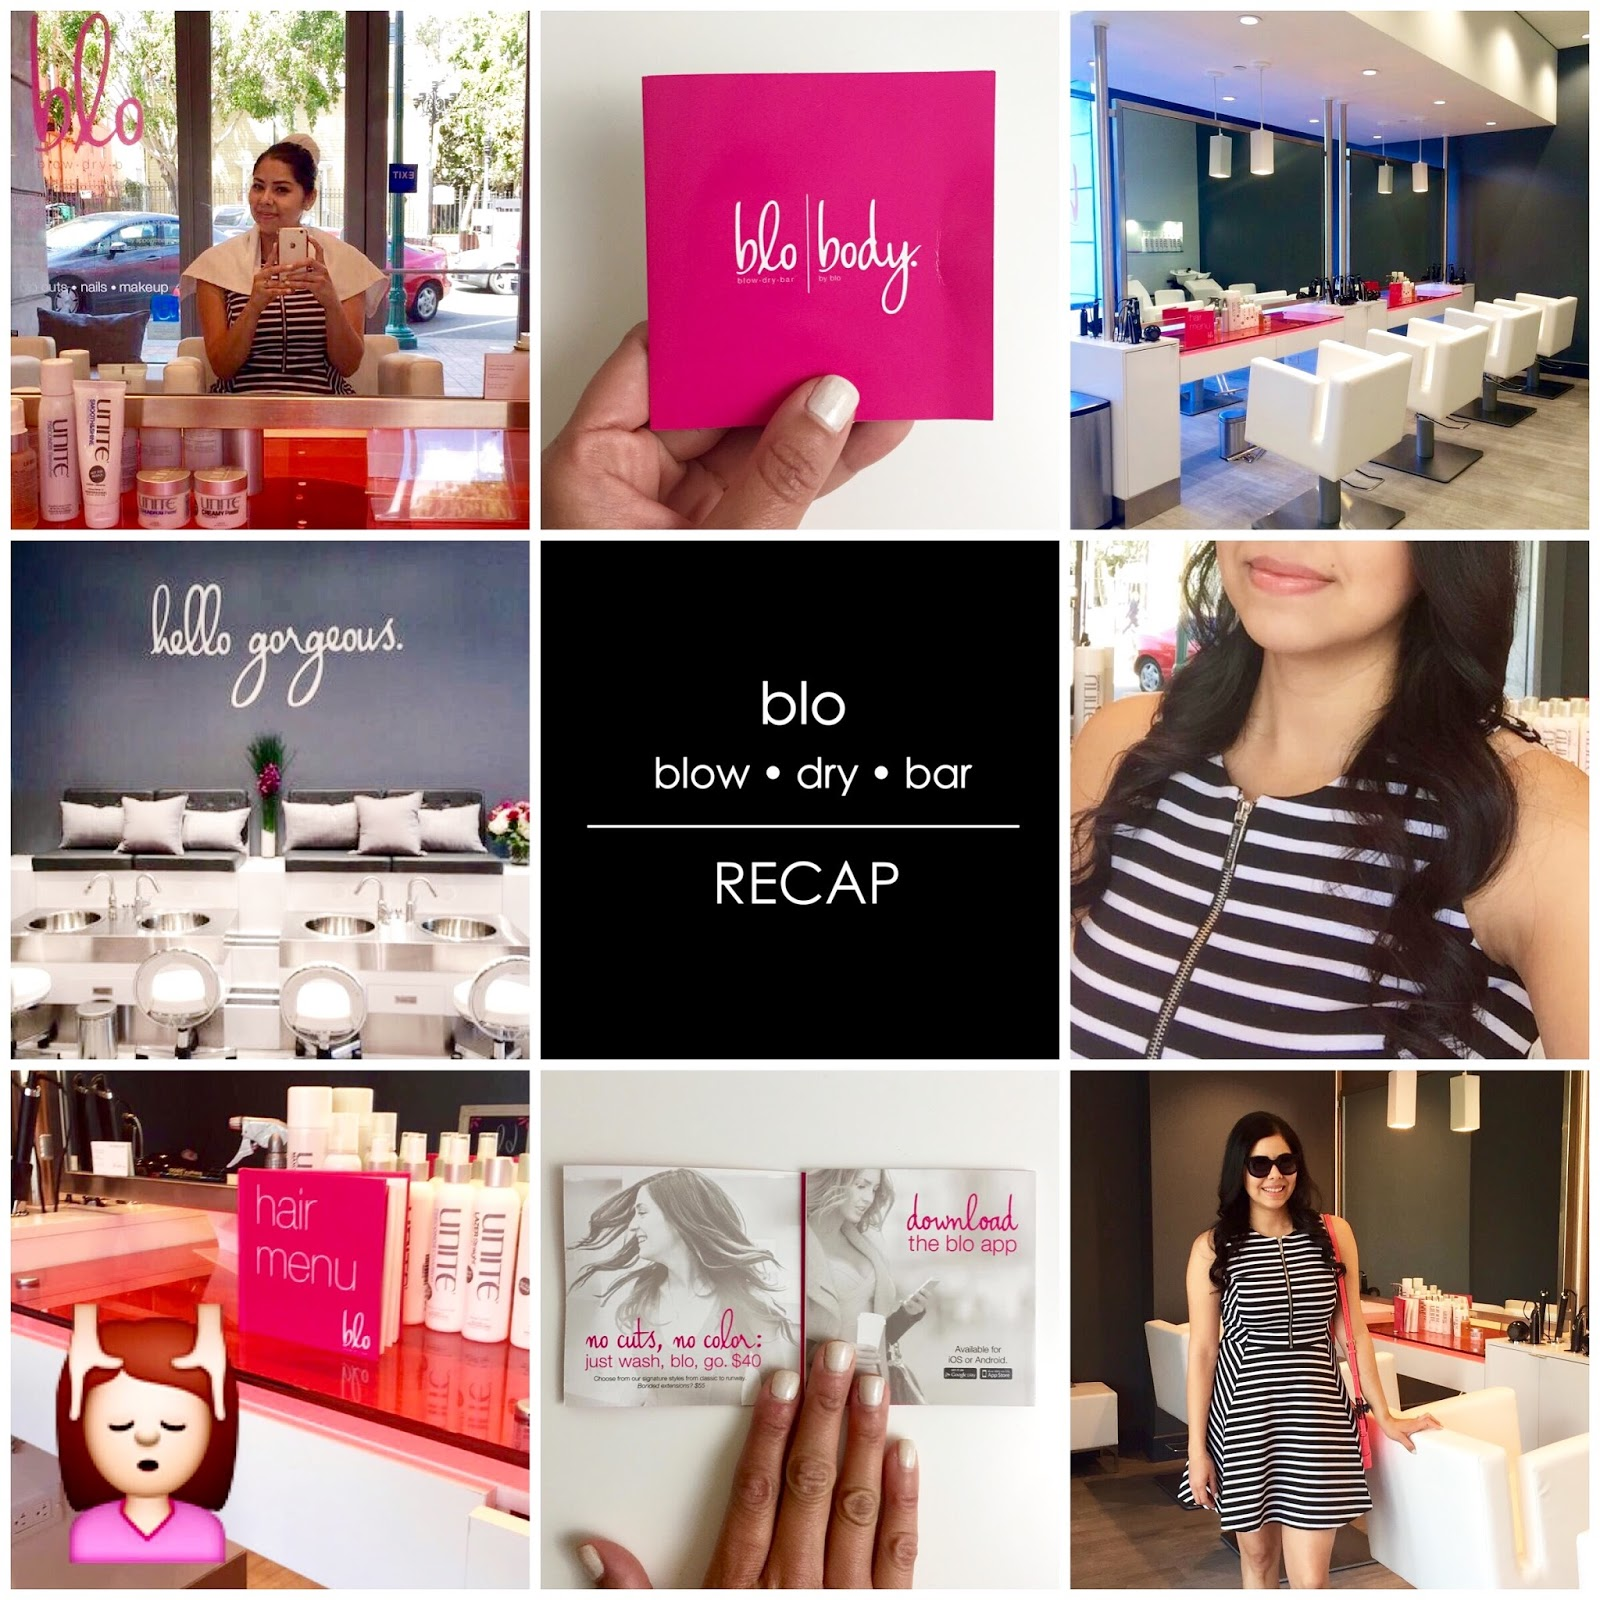 Blo San Diego, Blo Gaslamp, Blo Blow Dry Bar, Body by Blo, Blo Bar in San Diego, Blo Bar review, Blo blogger recap, Blo opens in 2015, Drybars in San Diego, places to get blow outs in San Diego